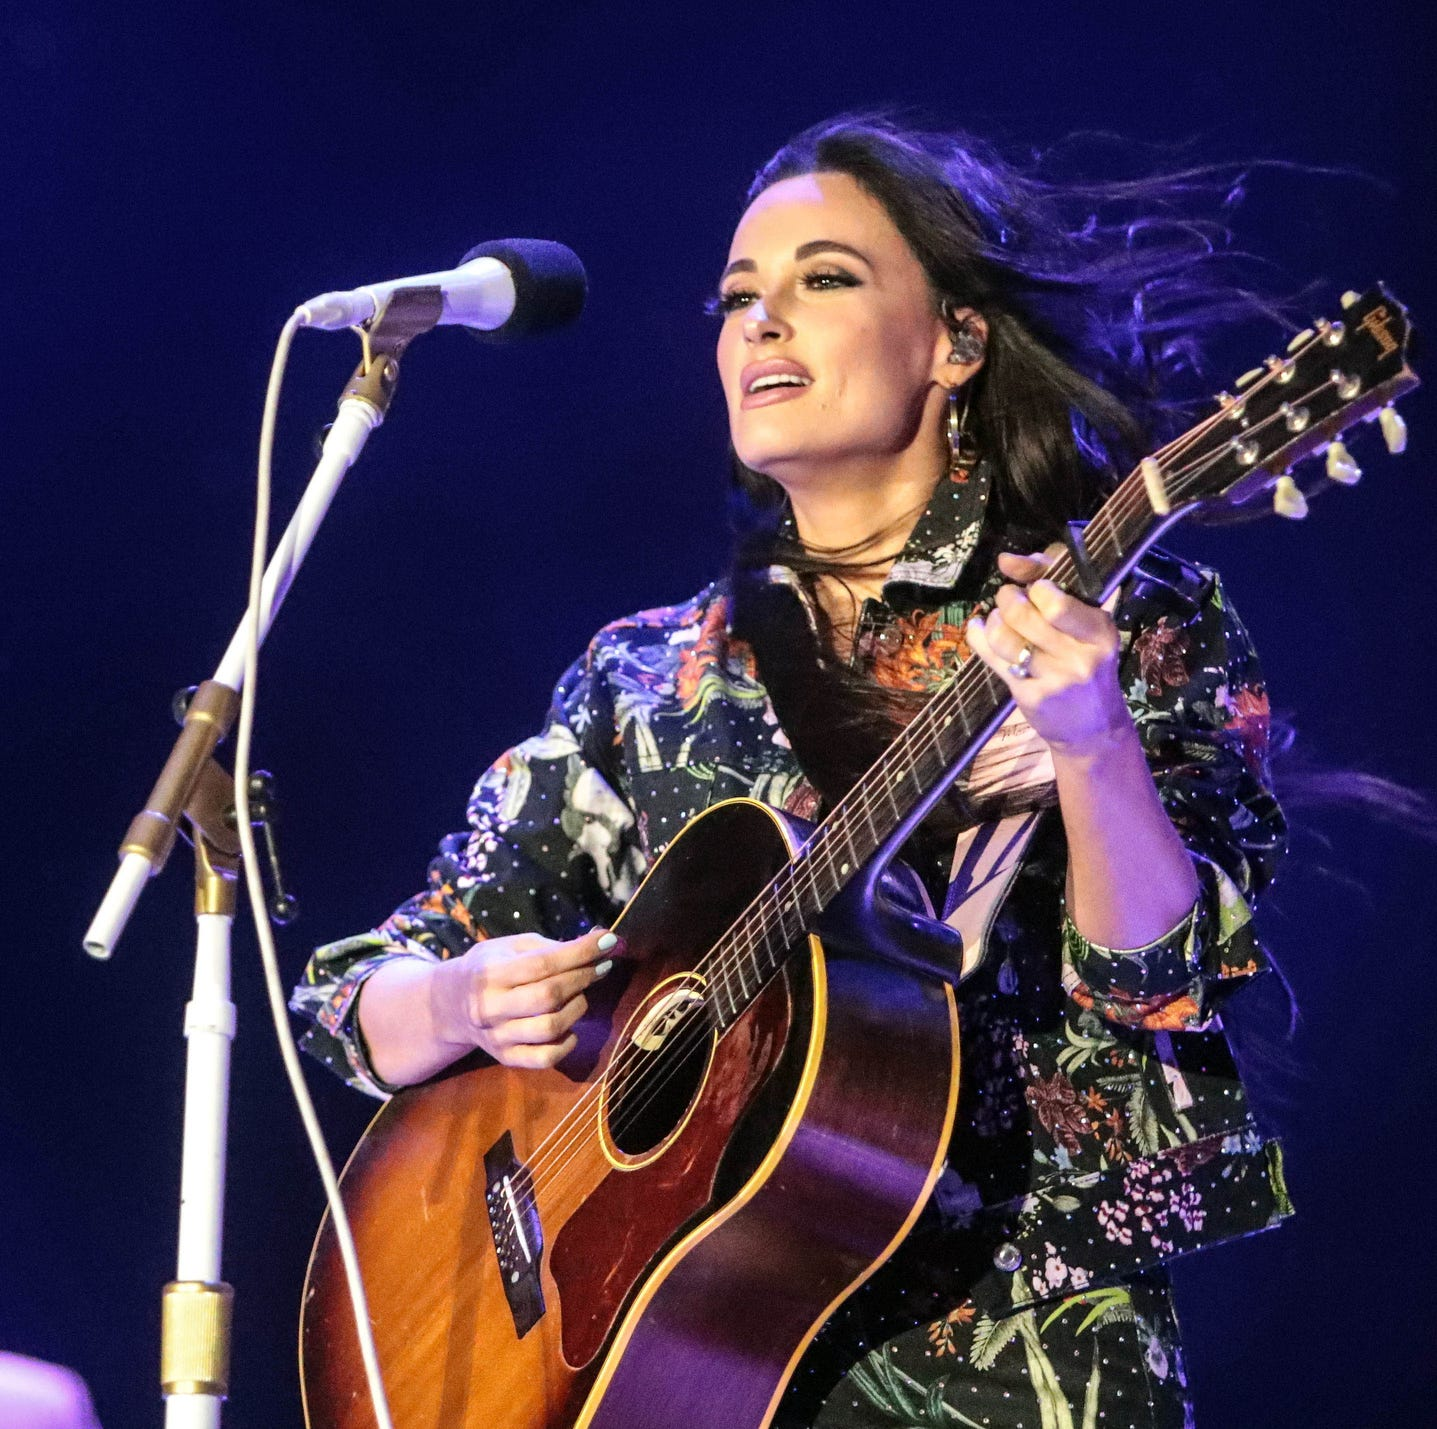 Grammy nominees: Kacey Musgraves, Maren Morris up for top awards